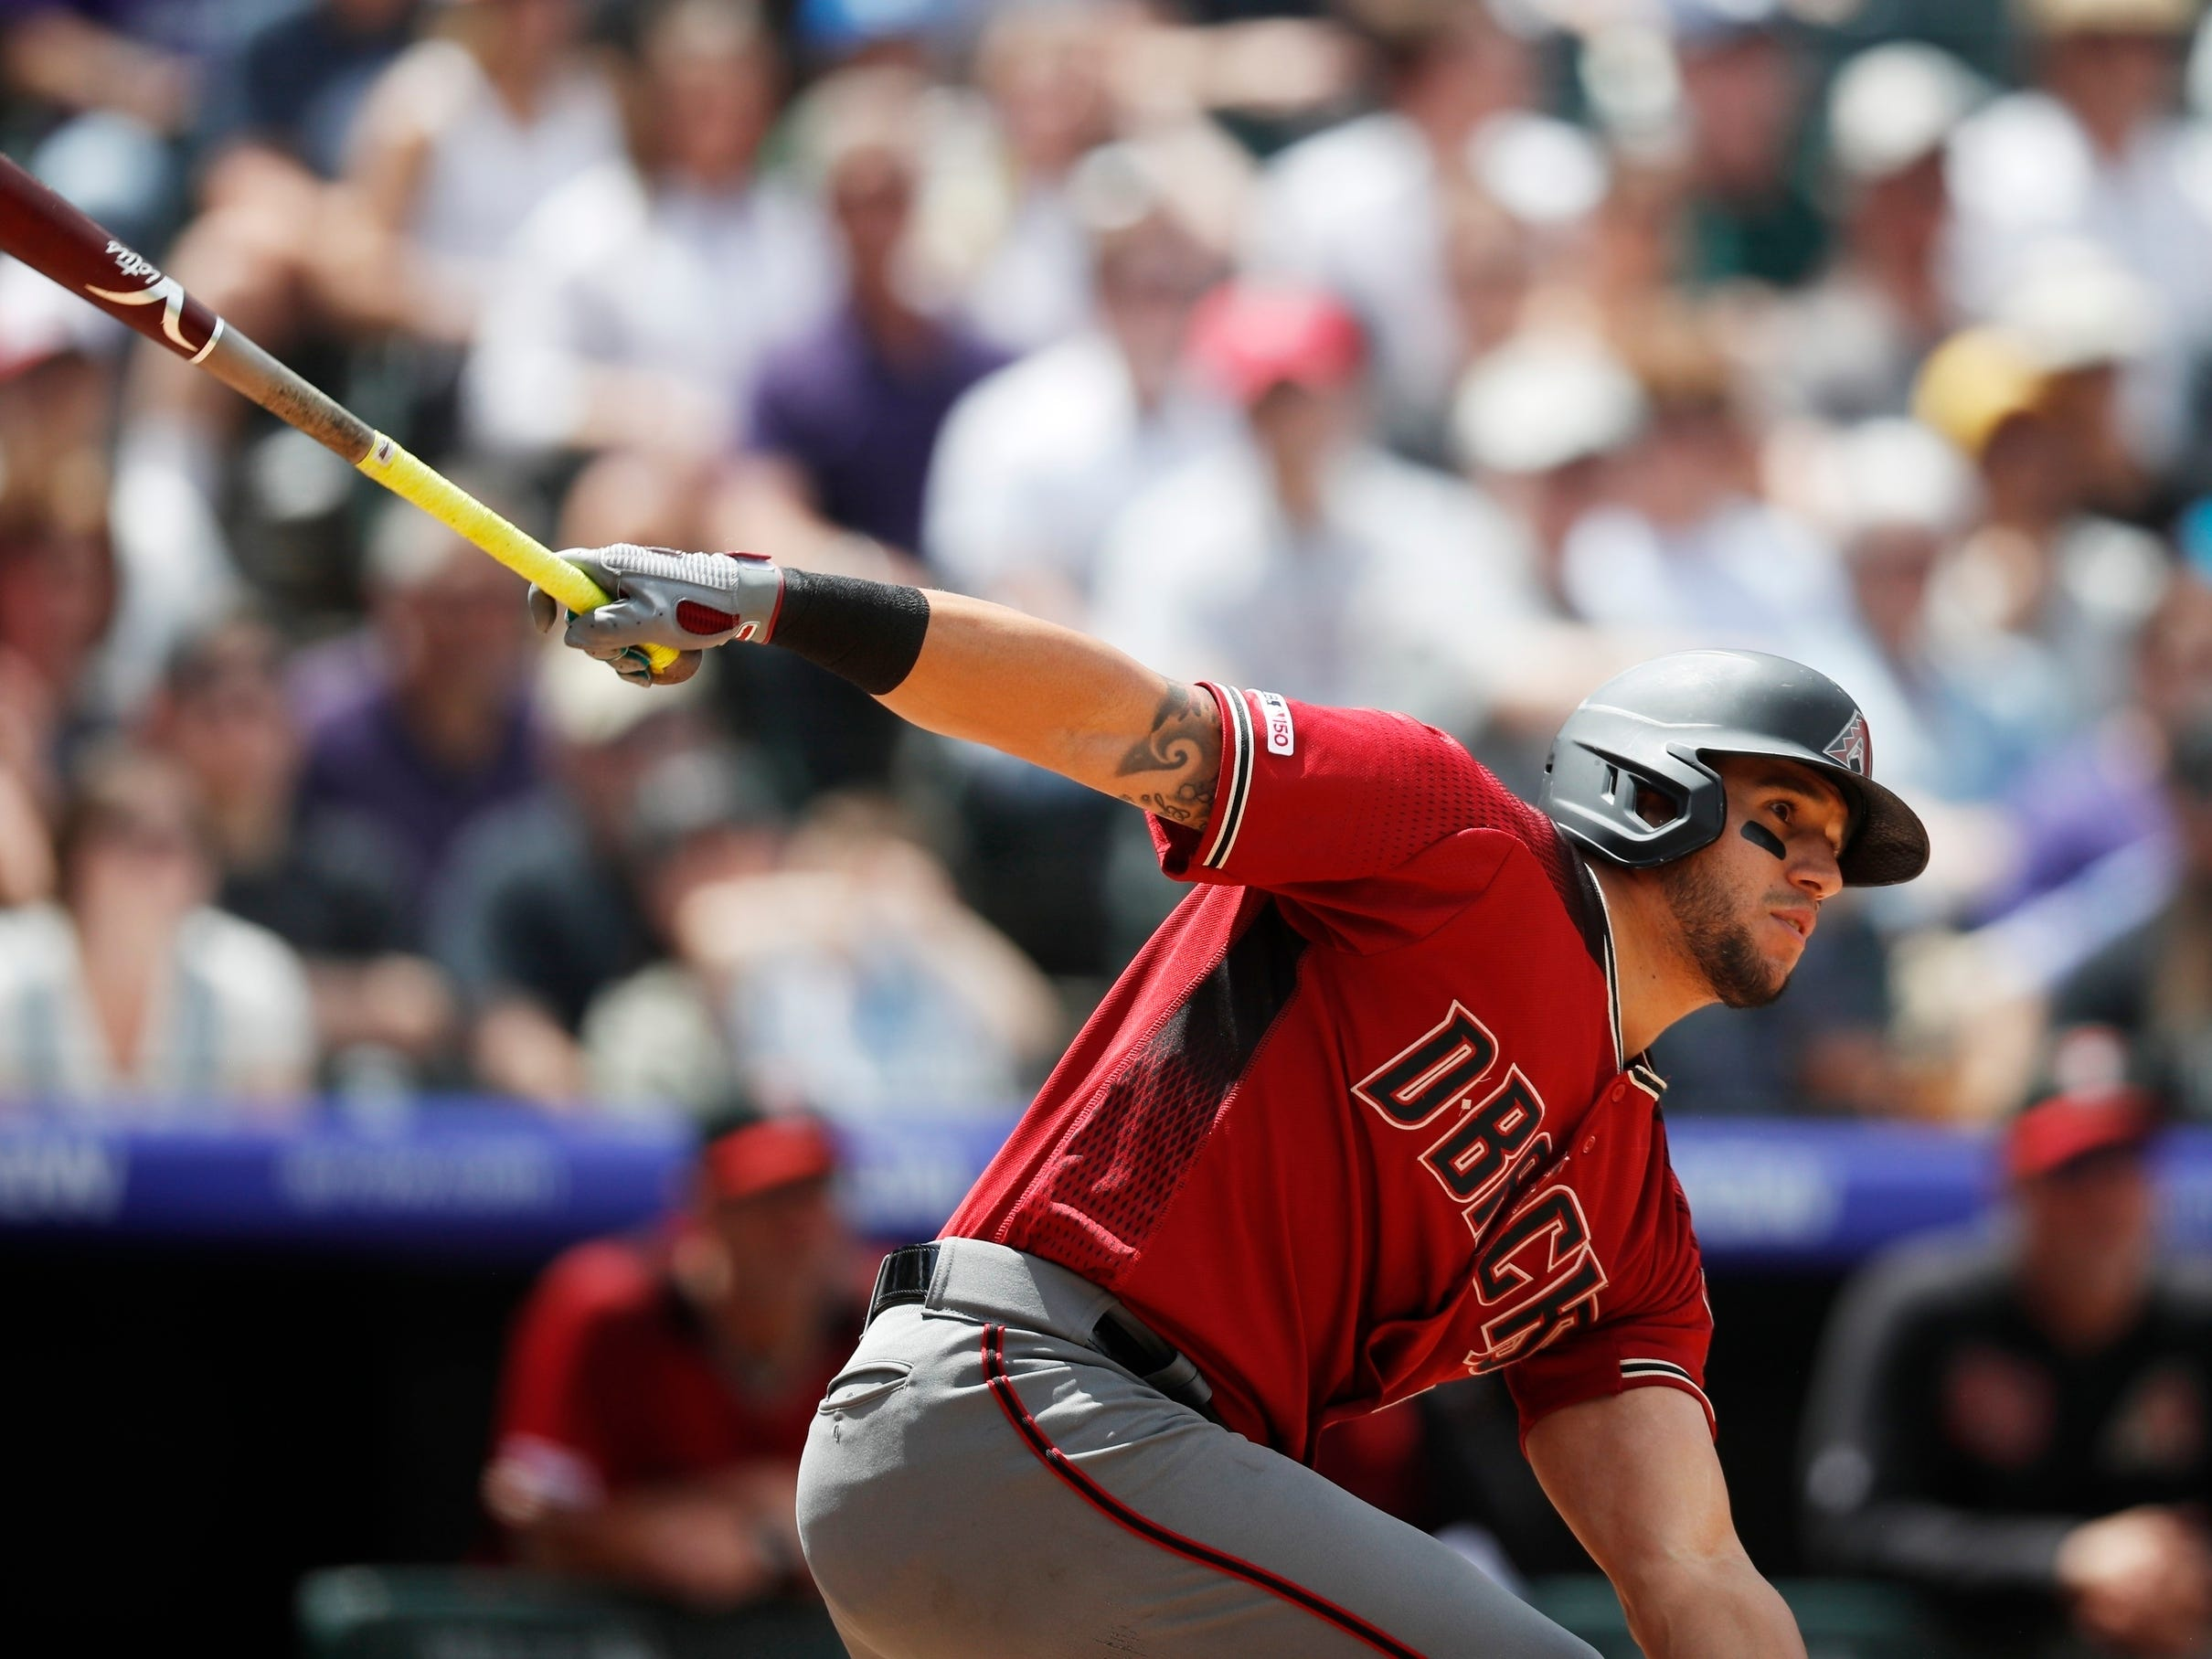 Arizona Diamondbacks' David Peralta follows the flight of his RBI-double off Colorado Rockies starting pitcher German Marquez in the third inning of a baseball game Sunday, May 5, 2019, in Denver. (AP Photo/David Zalubowski)